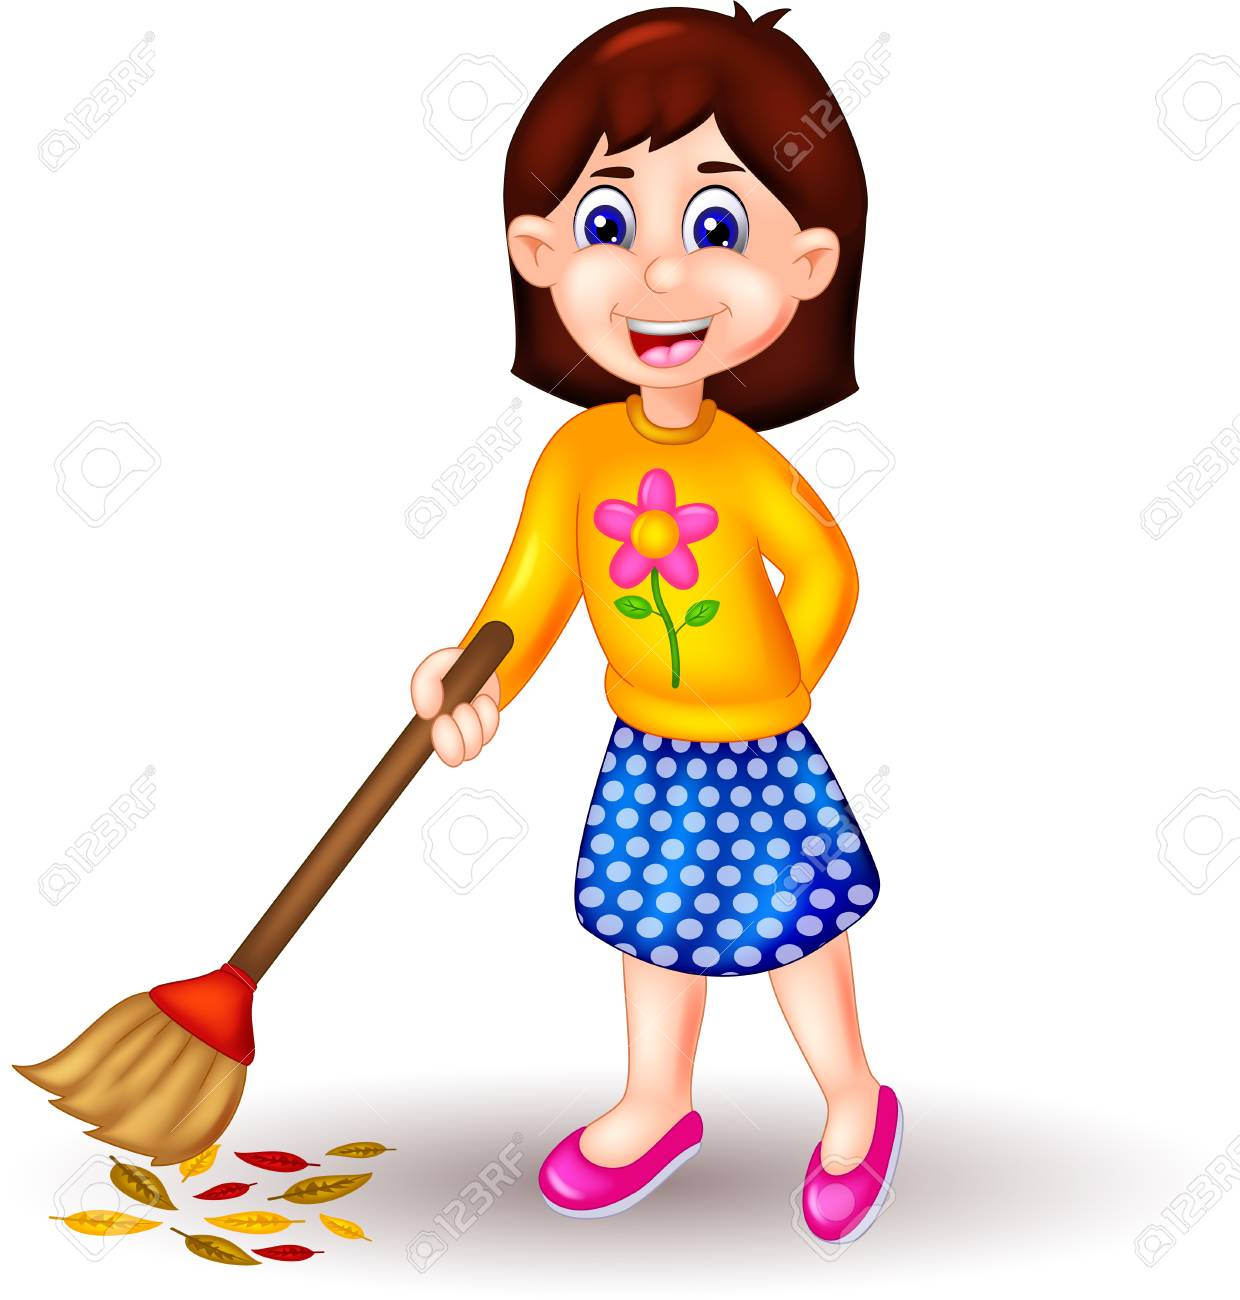 beauty girl cartoon standing with sweeping floor stock photo picture and royalty free image image 94027880 beauty girl cartoon standing with sweeping floor